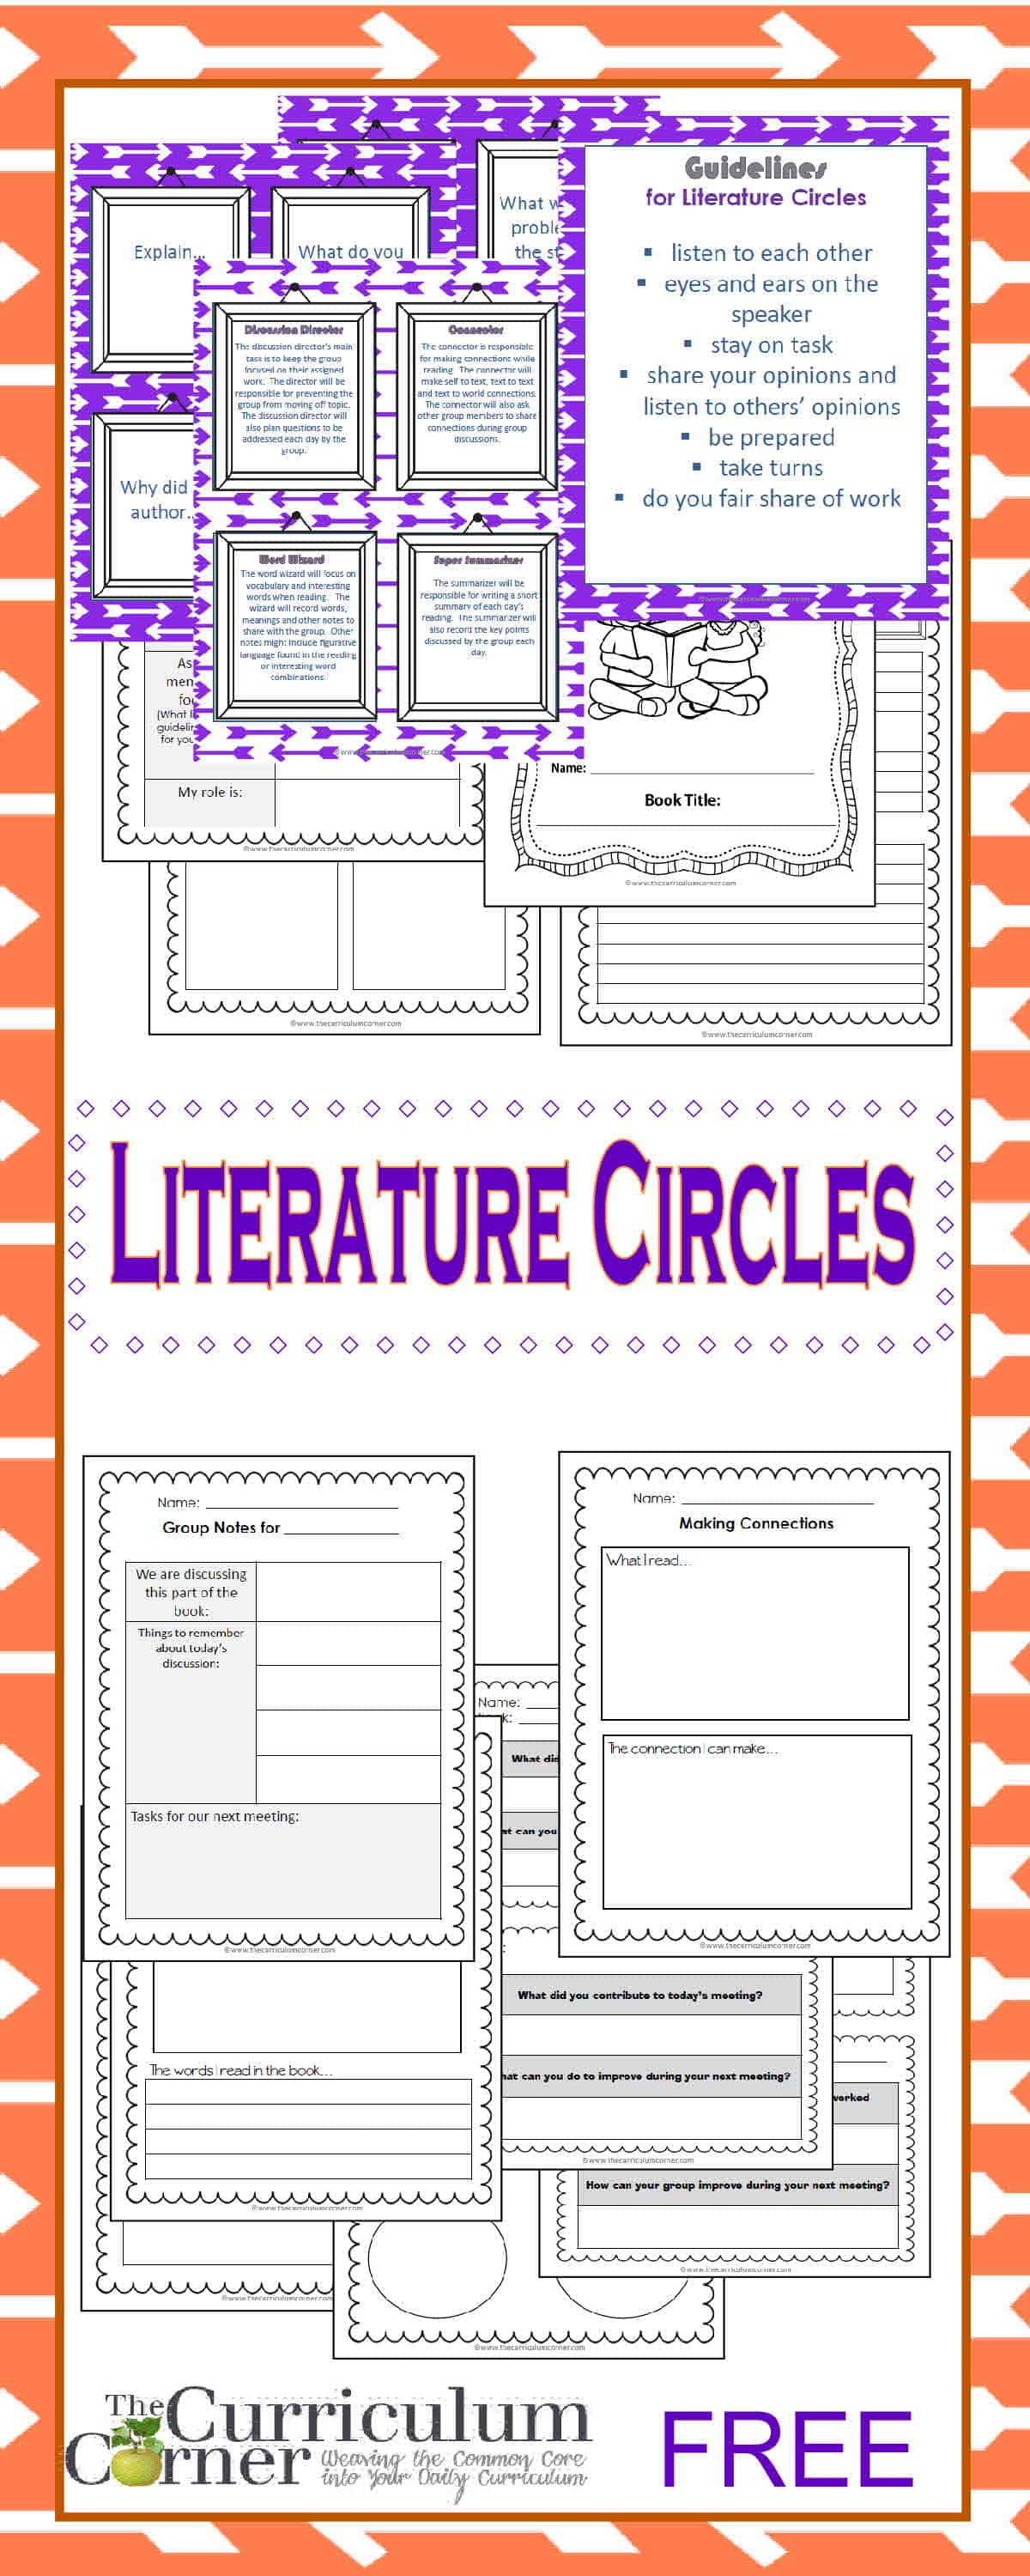 Gett G St Rted With Liter Ture Circles Curriculum C Ner 4 5 6